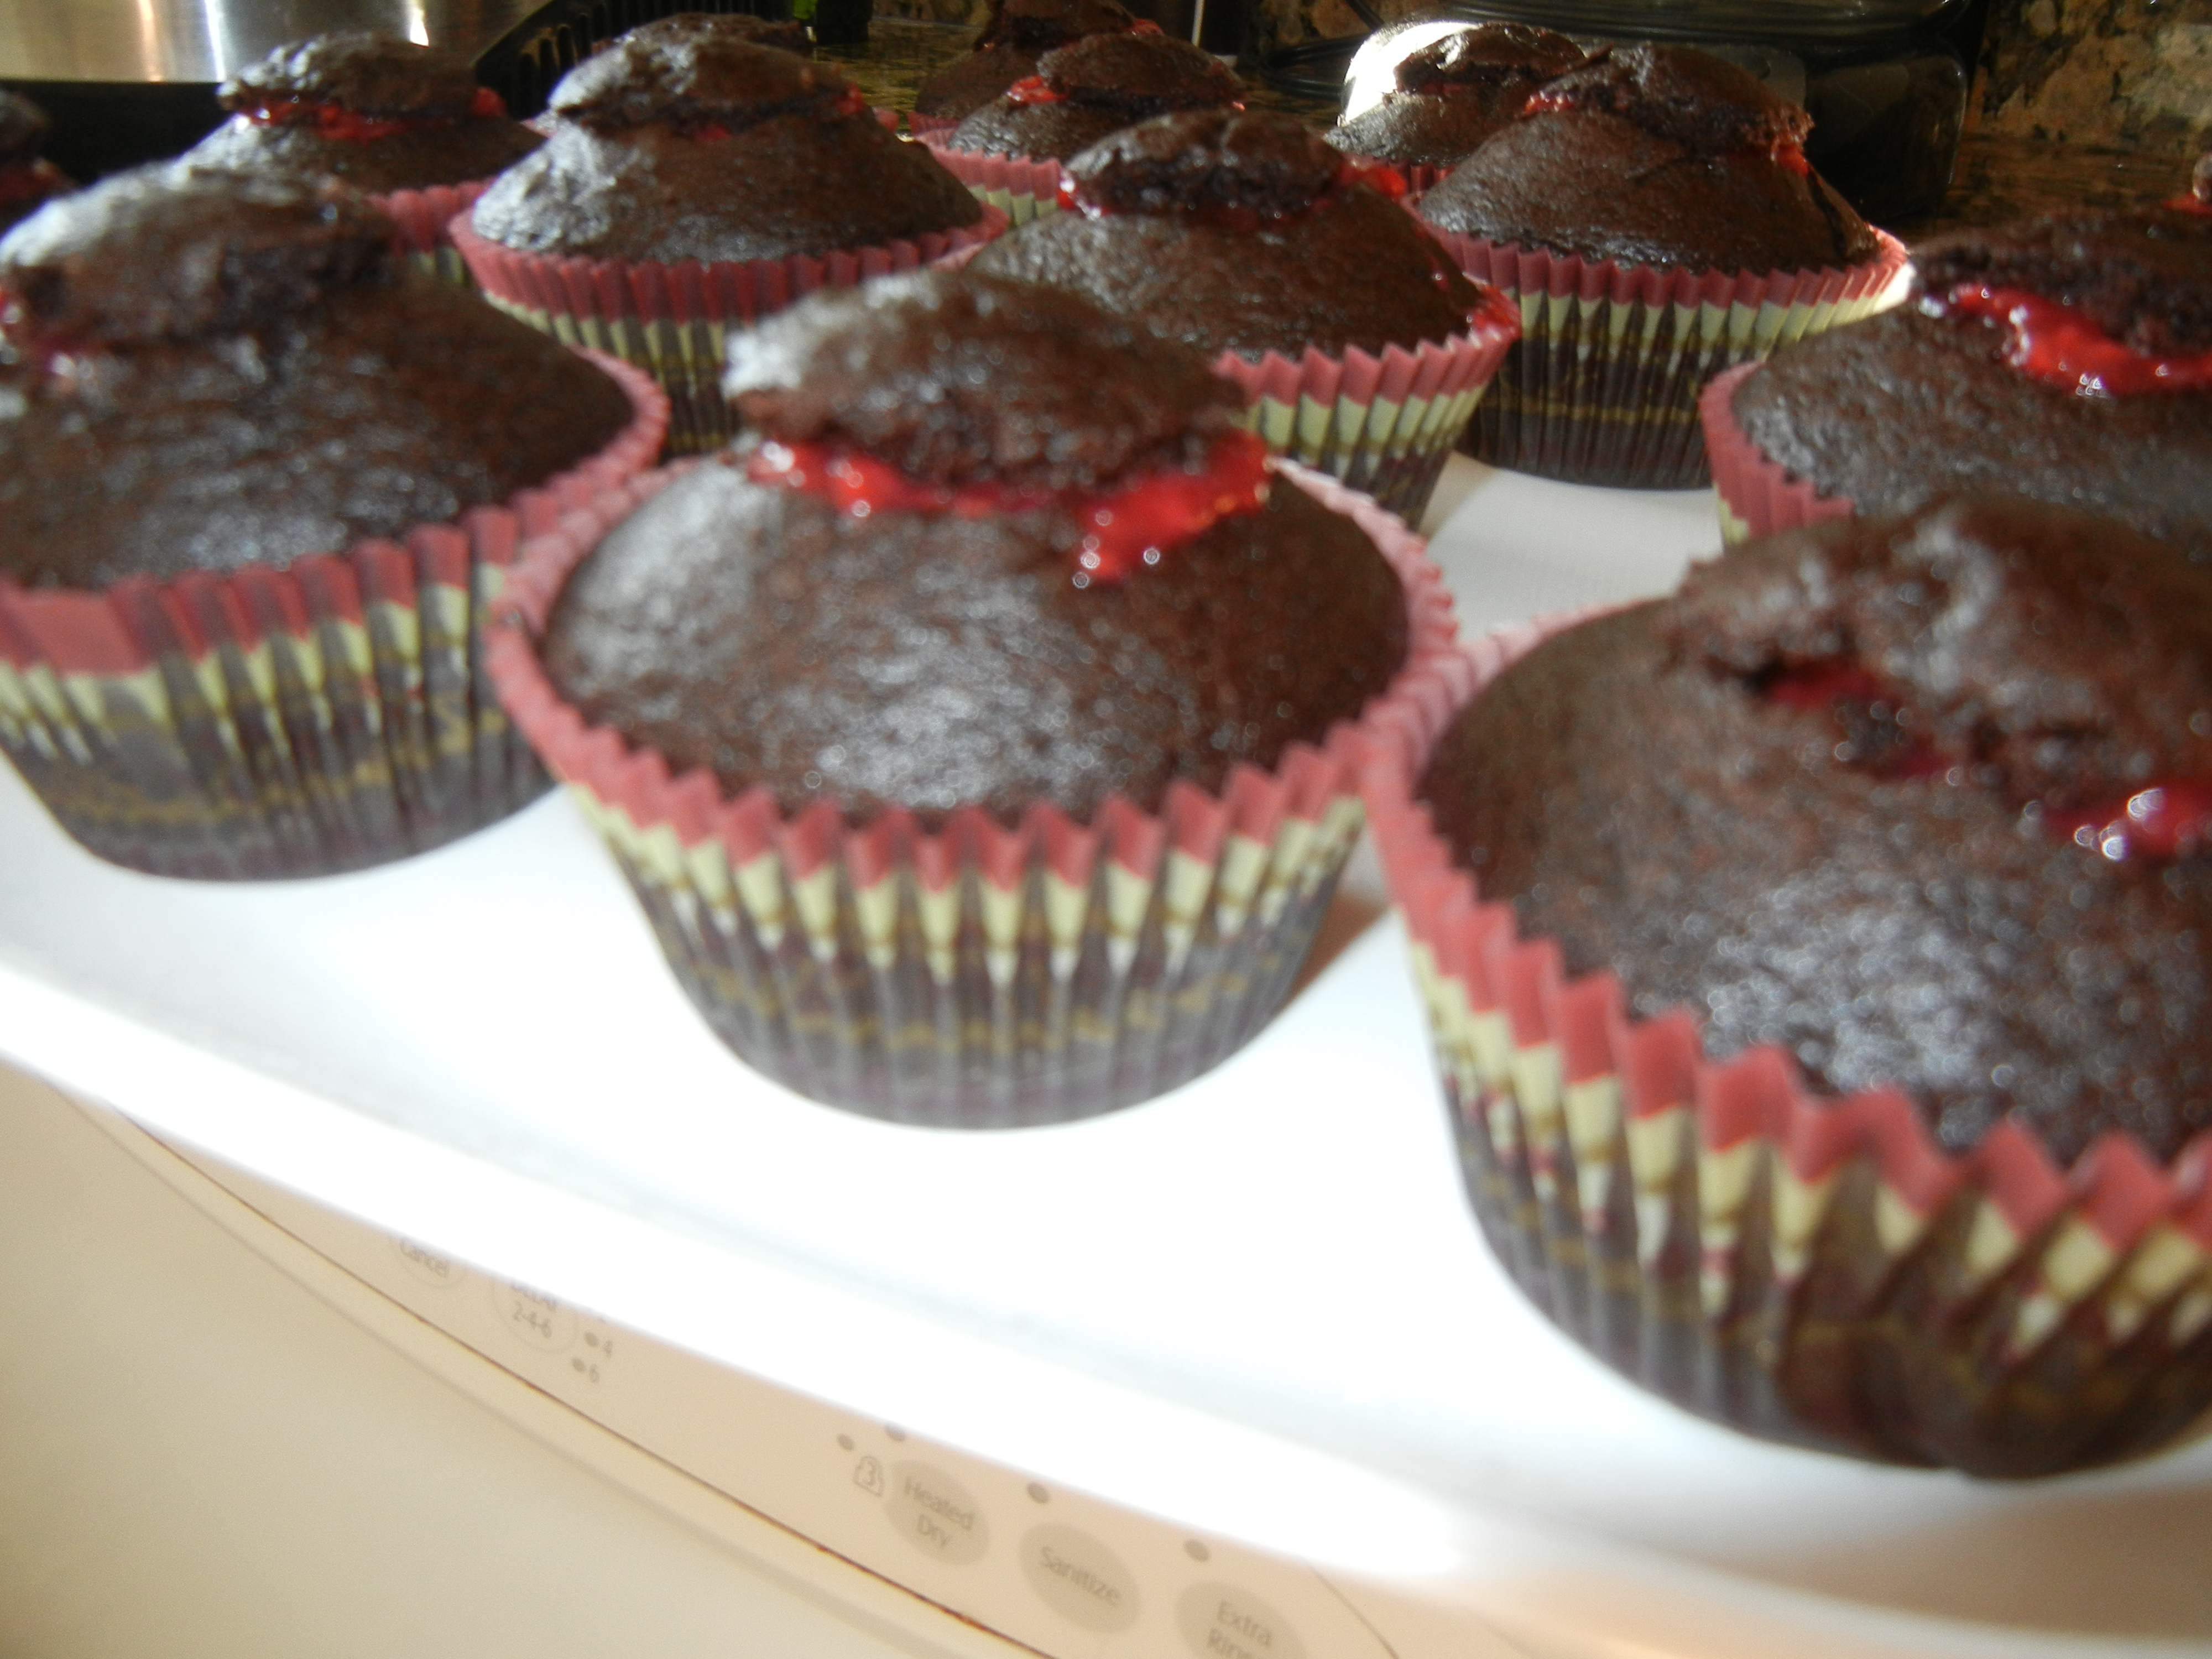 Chocolate Cupcakes with Raspberry Filling